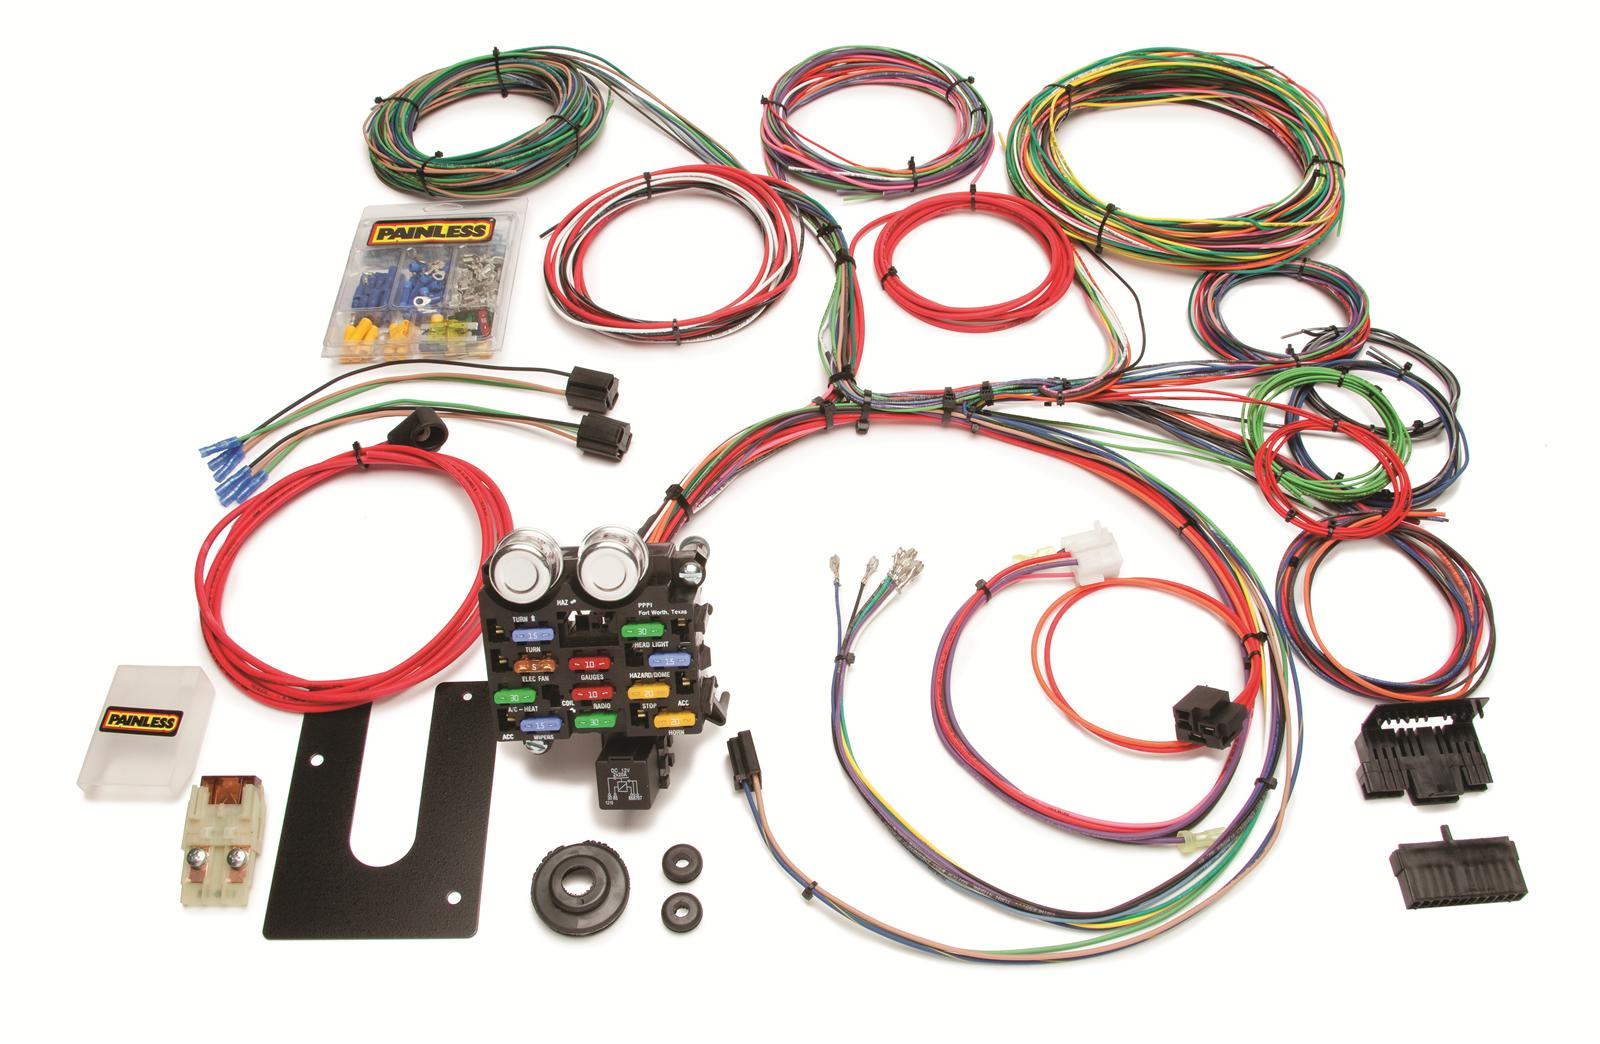 prf 10101_xl painless performance 21 circuit universal harnesses 10101 free painless wiring harness rebate at panicattacktreatment.co